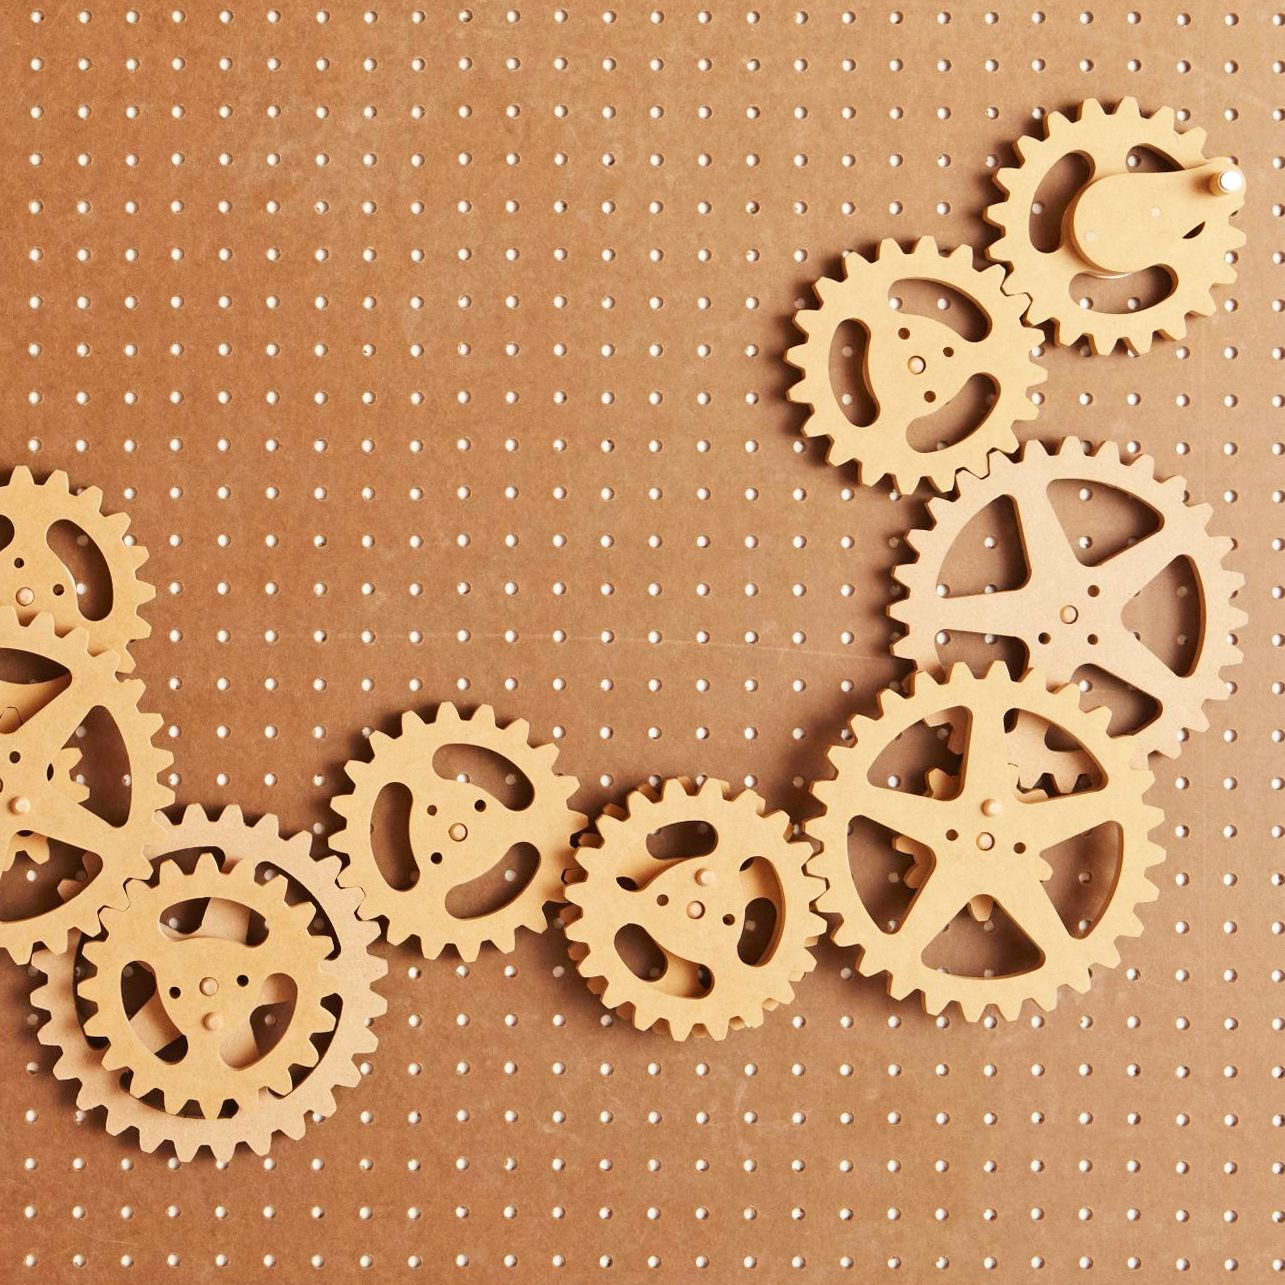 Scrollsawn Gears Turn The Kids Loose With A Pile Of These